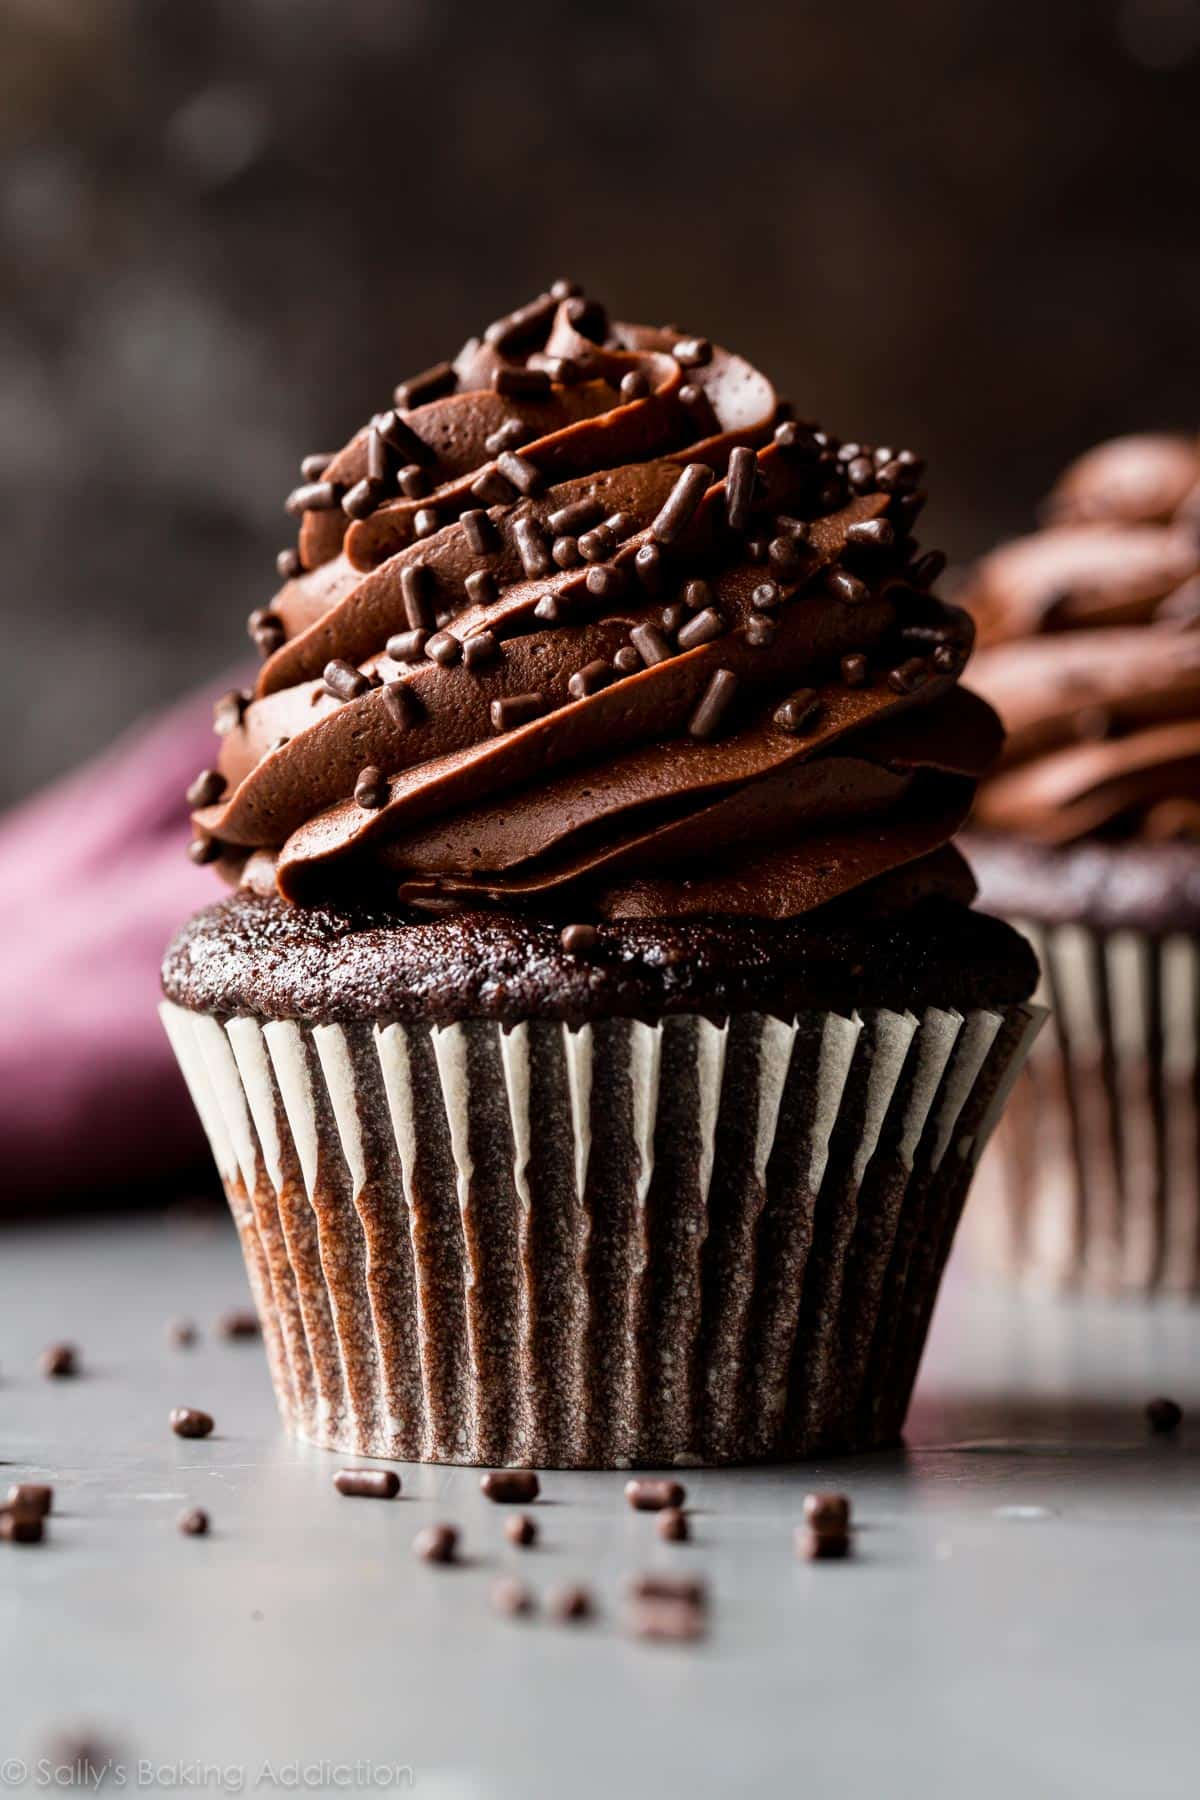 5 star chocolate cupcakes